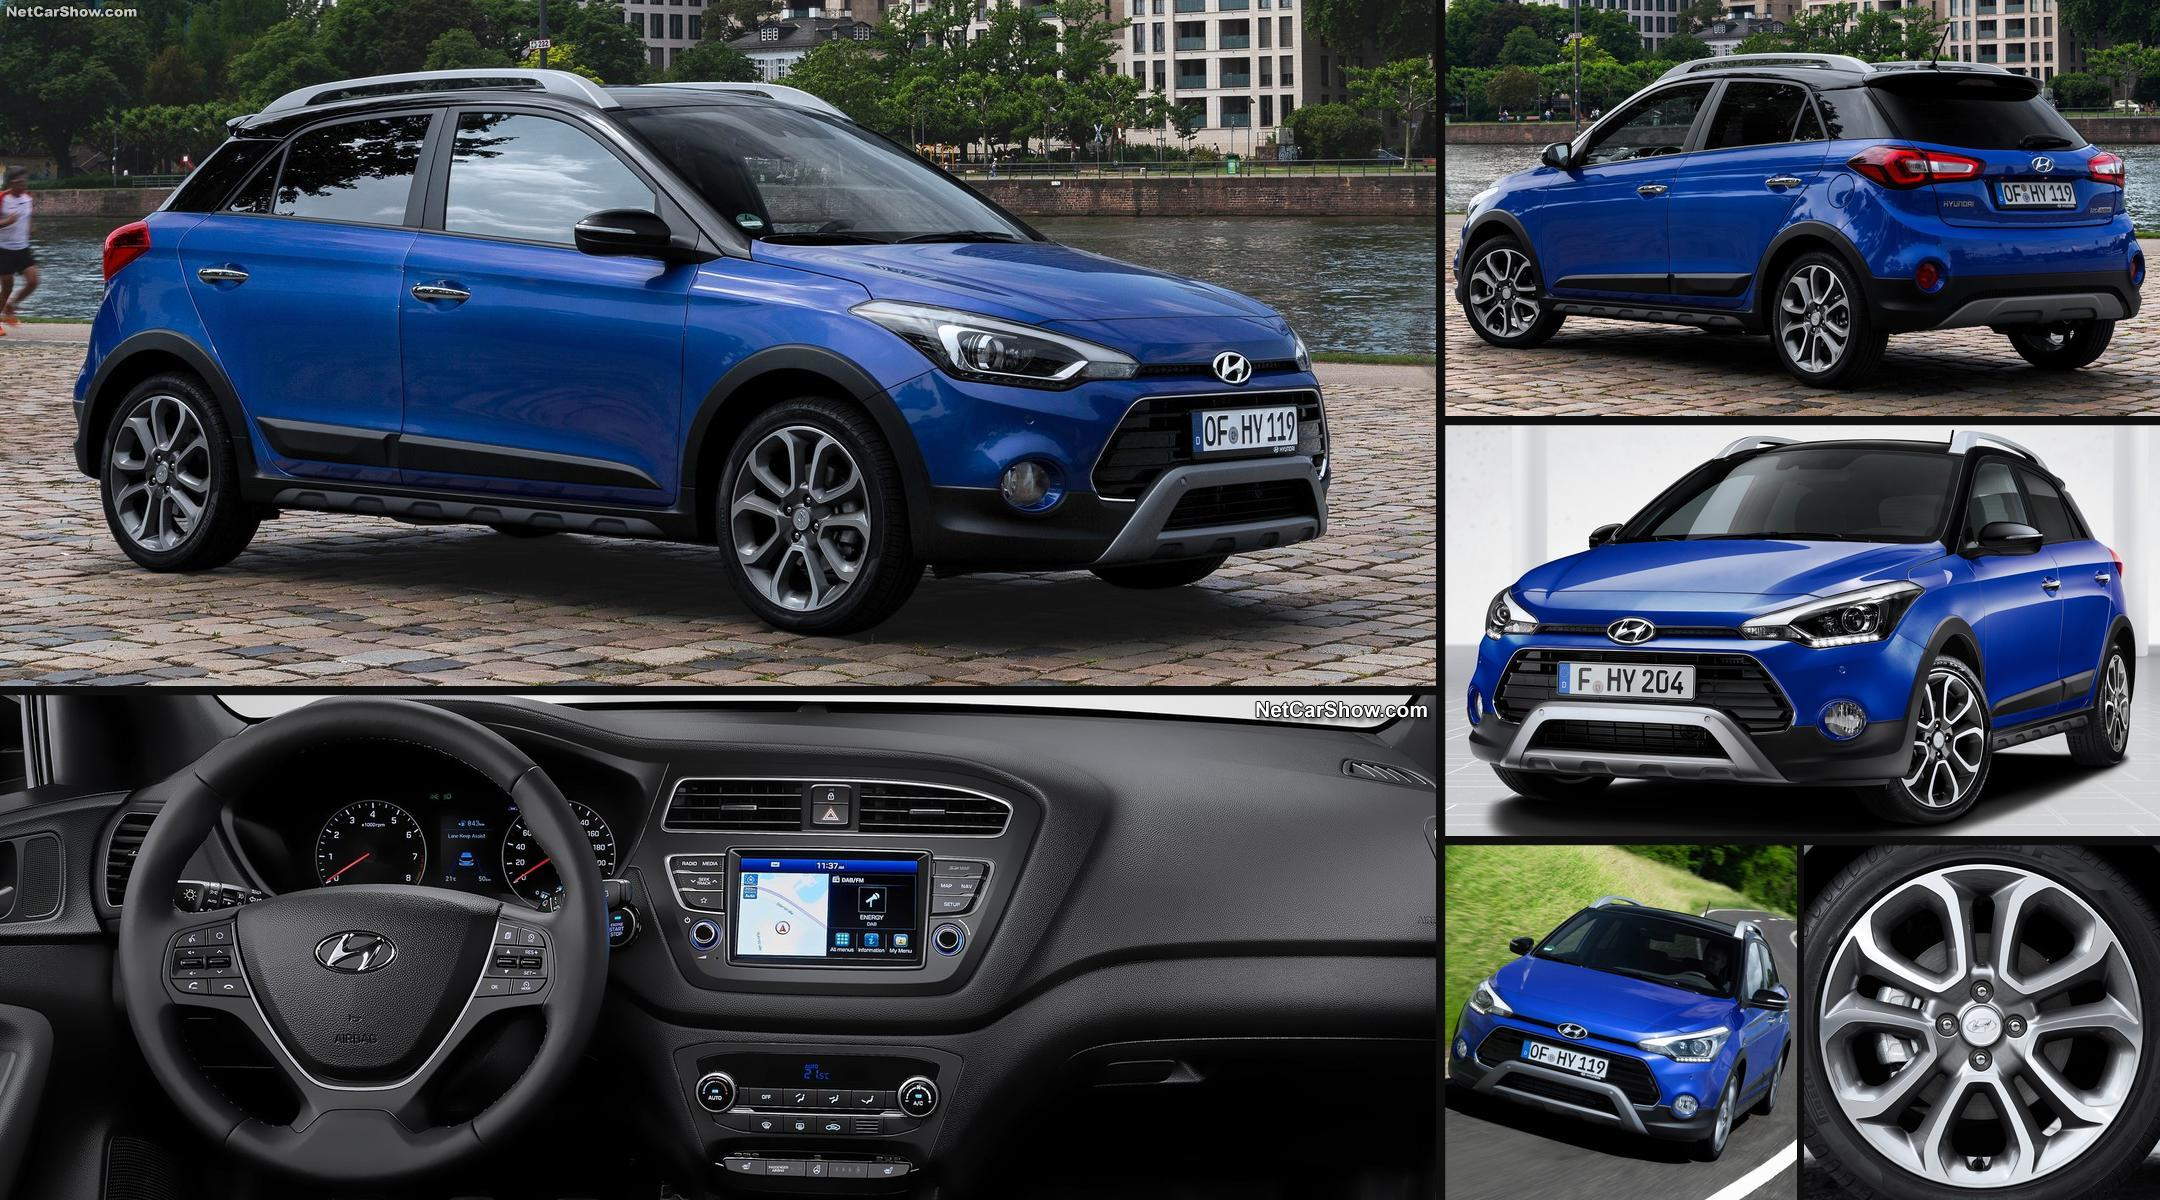 Hyundai Active i20 Launched with NEW SAFETY FEATURES